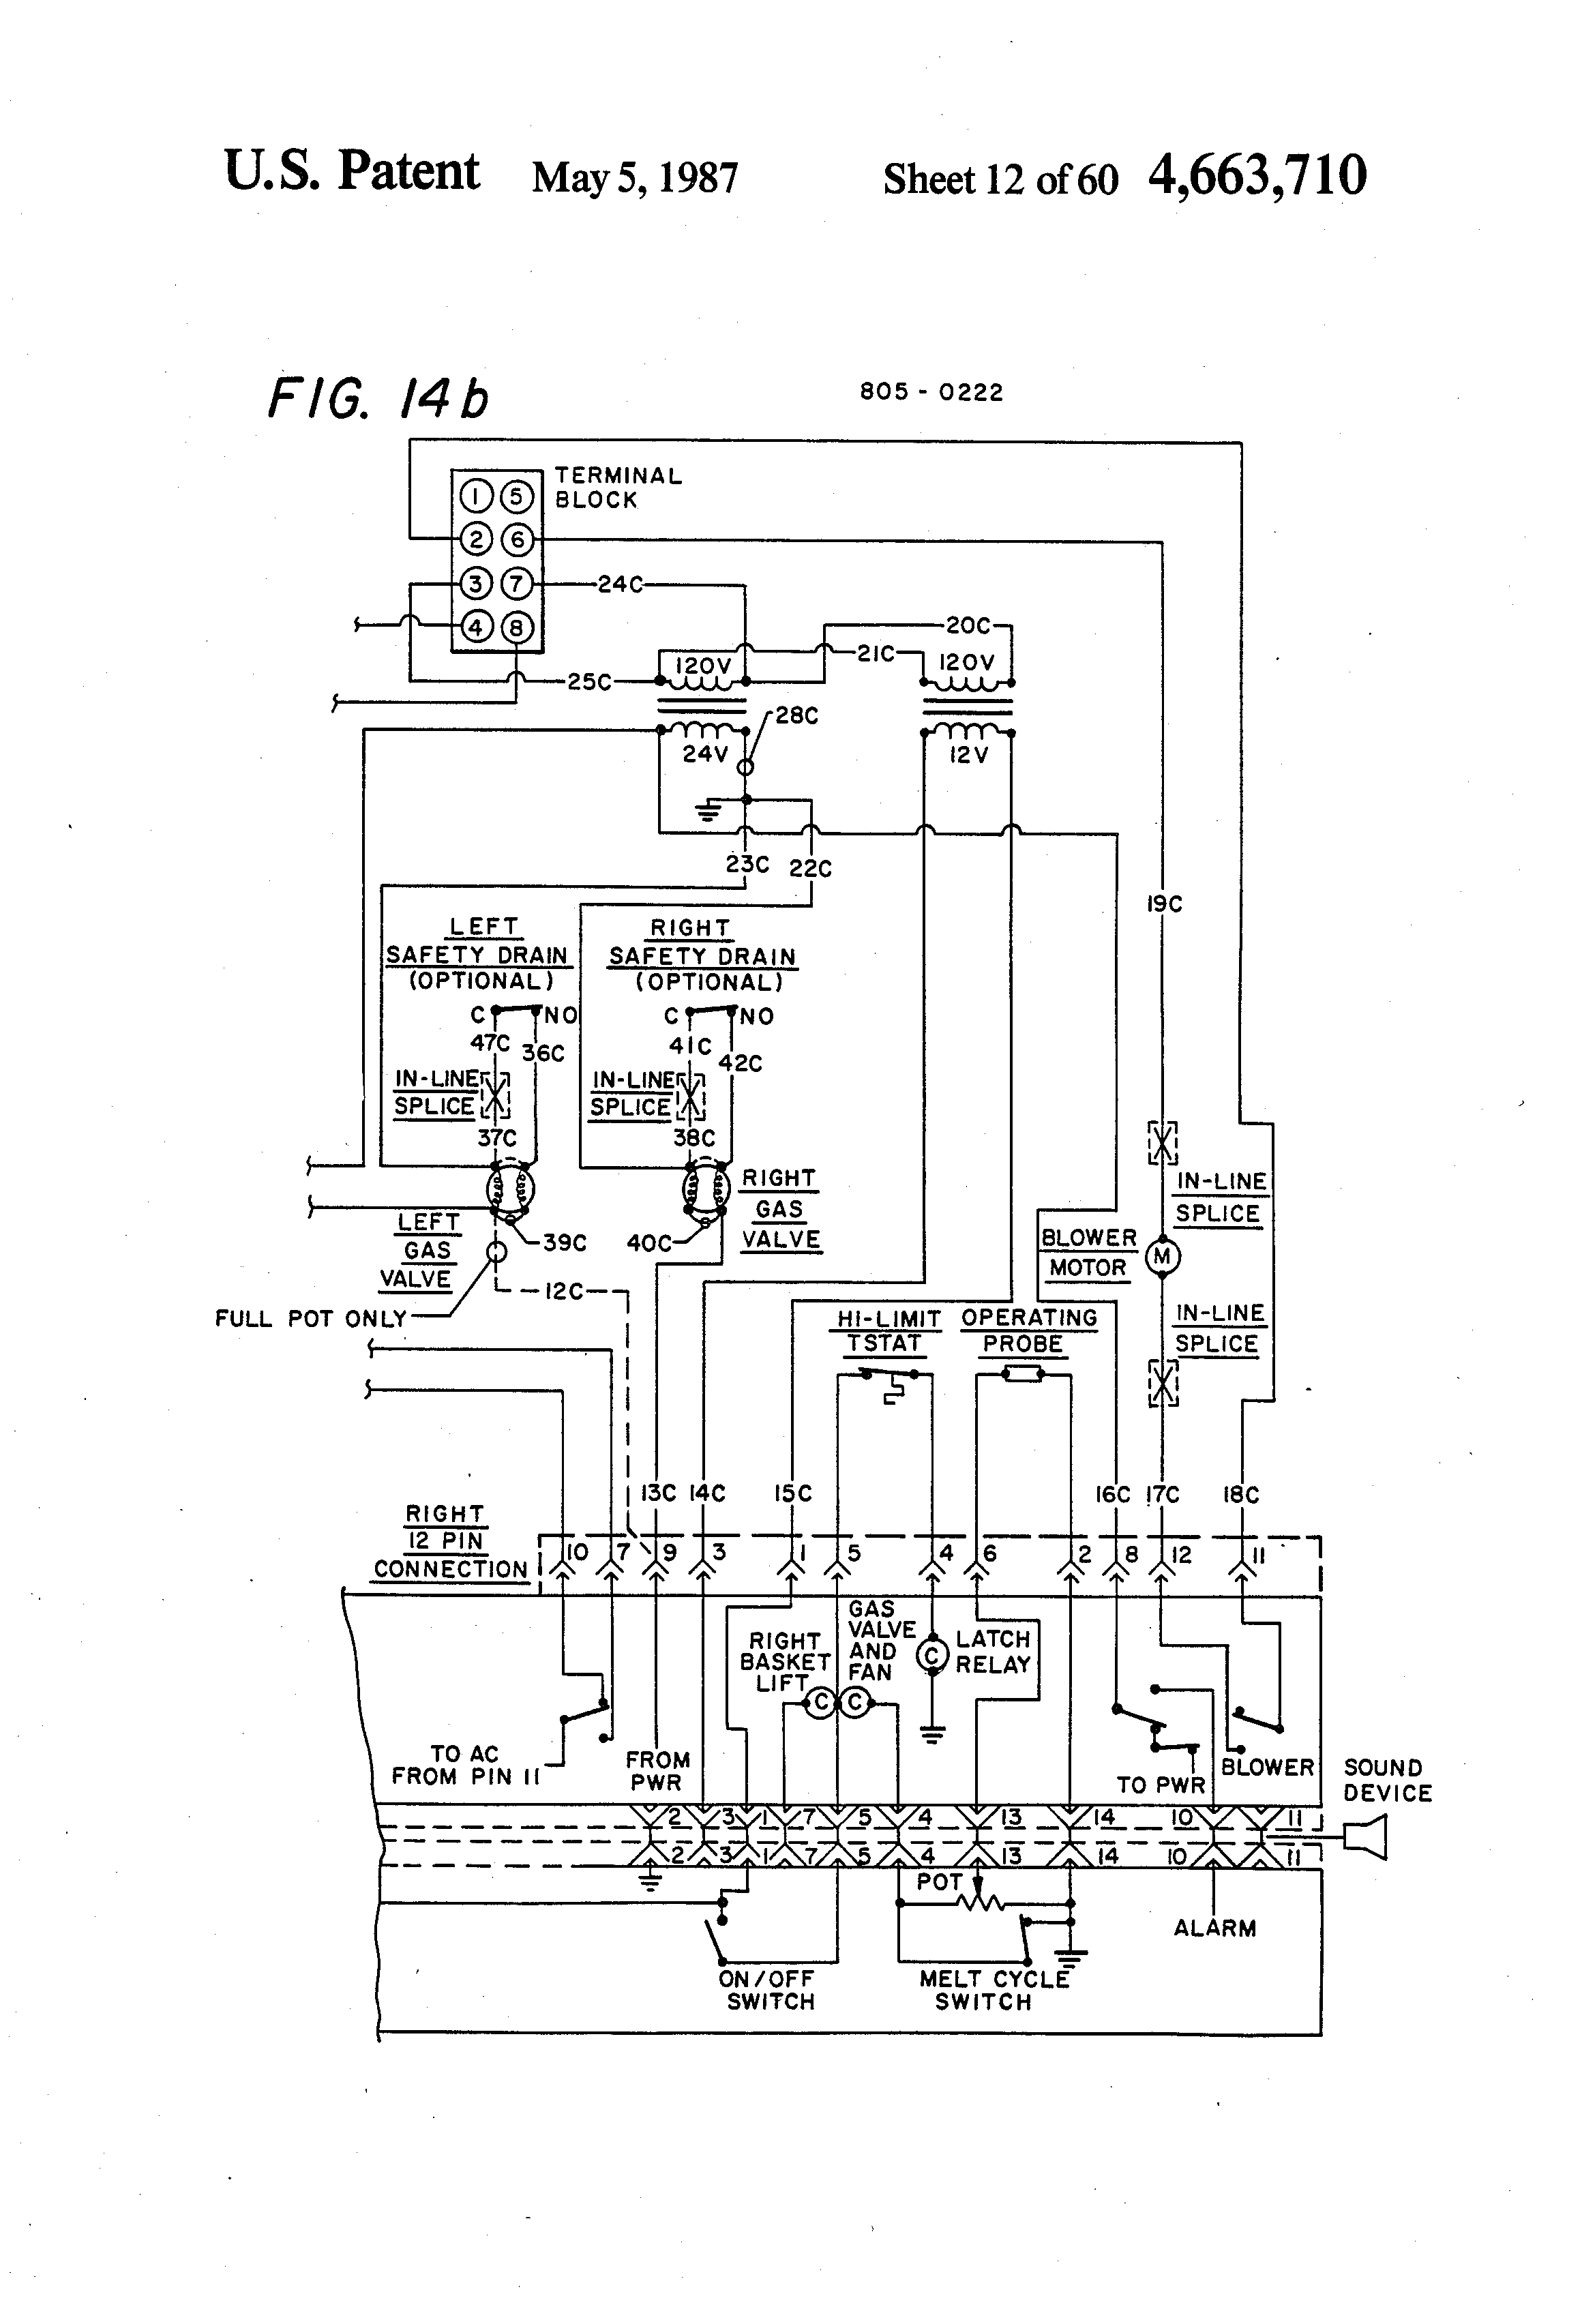 imperial deep fryer wiring diagram imperial fryer wiring diagram imperial deep fryer wiring diagram sample